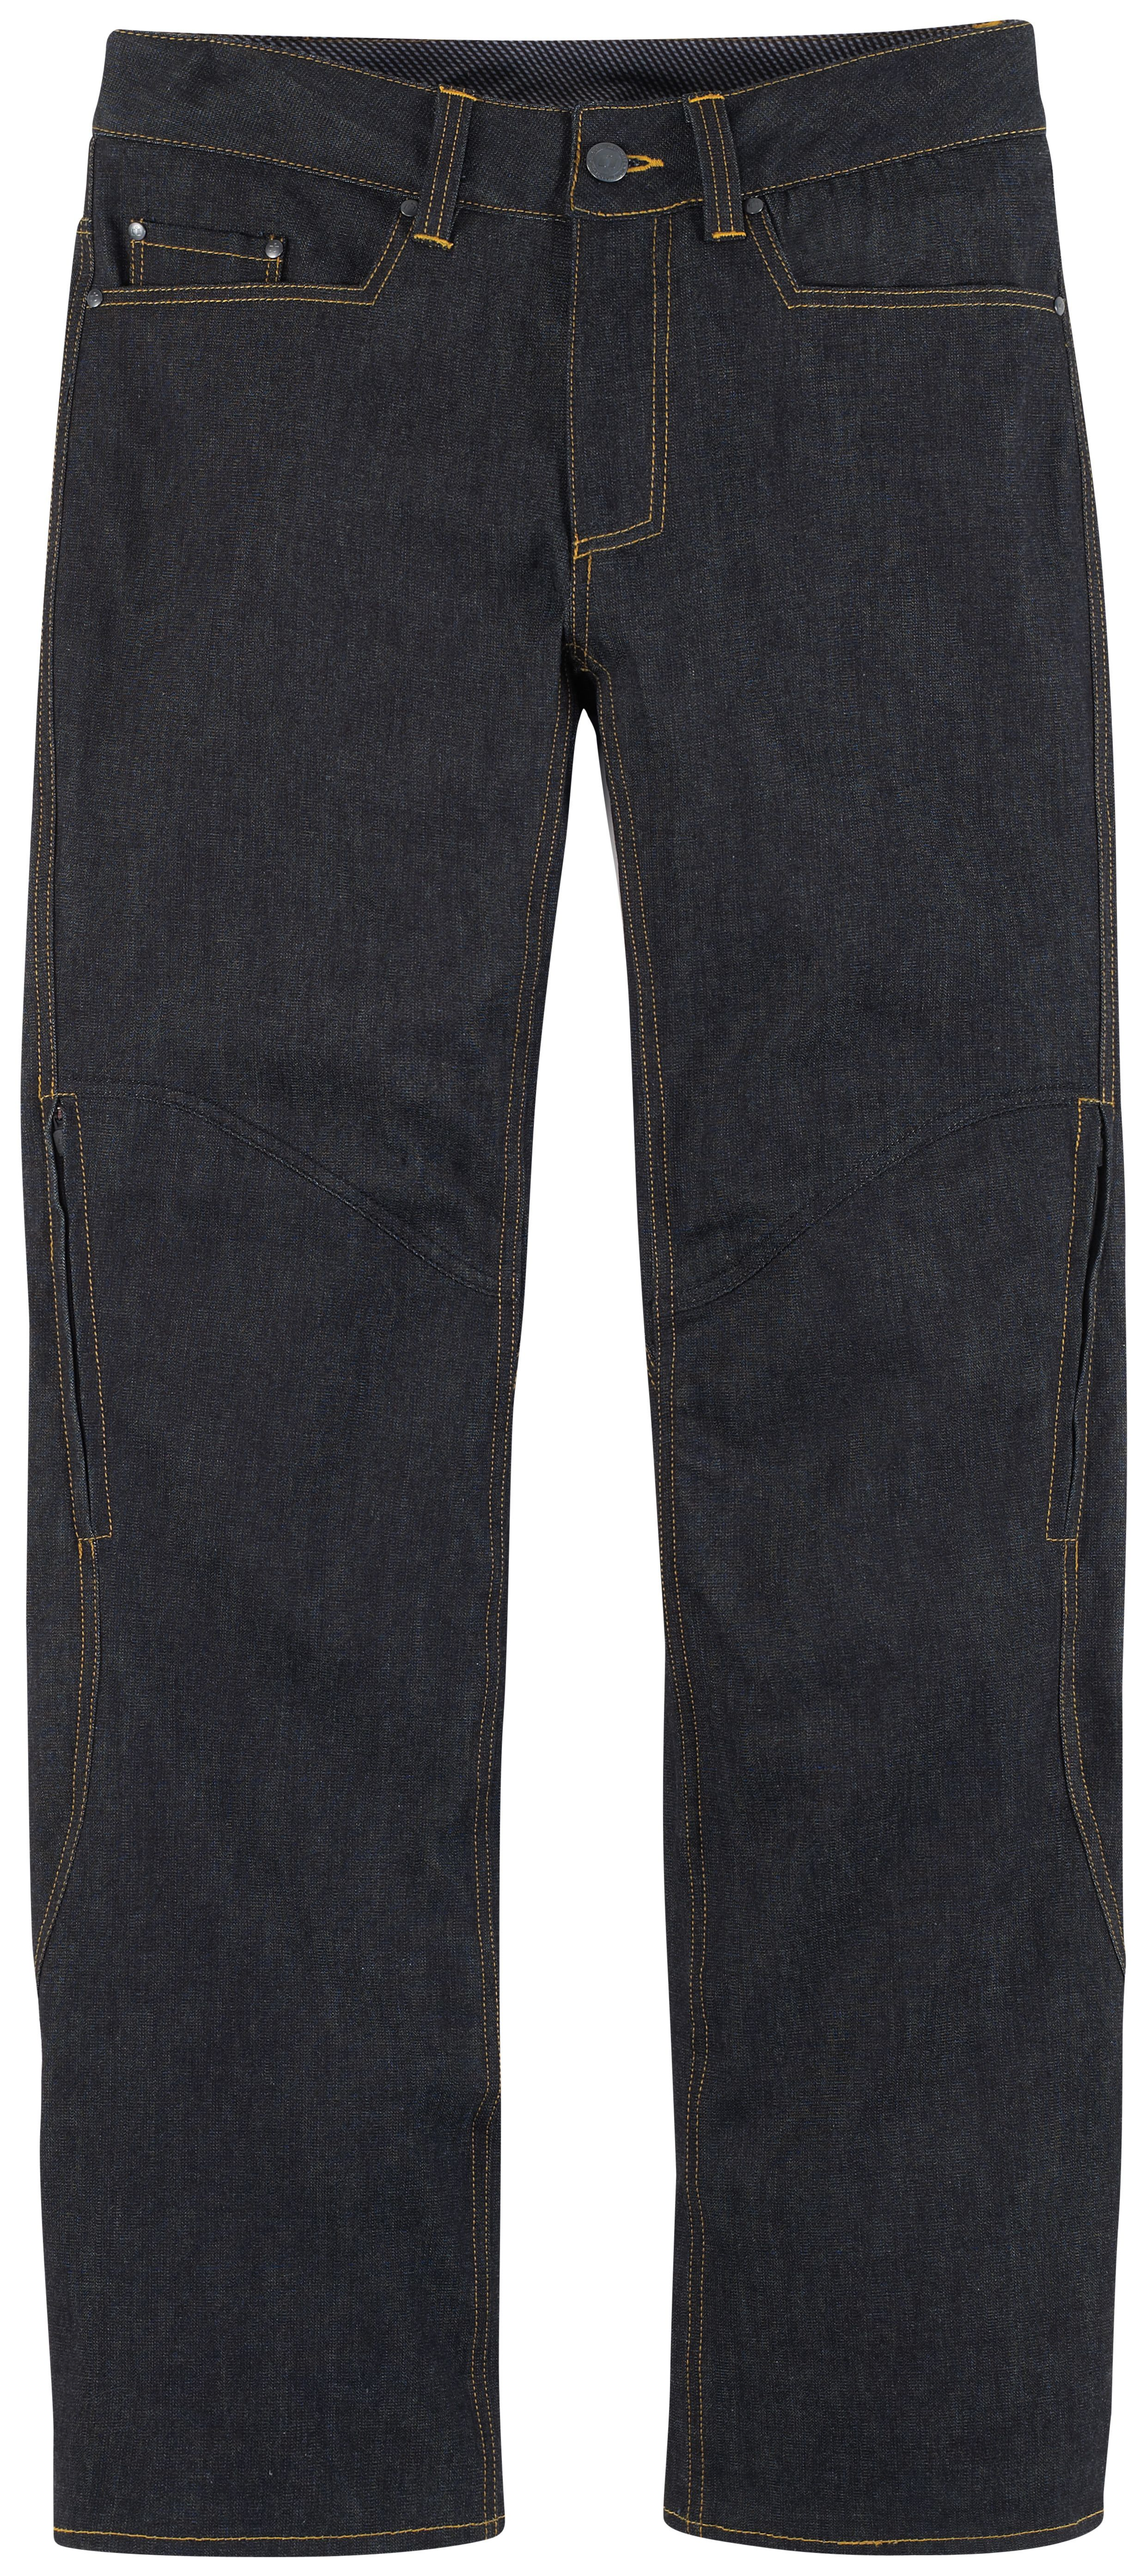 icon insulated denim pants - revzilla nskwvlh